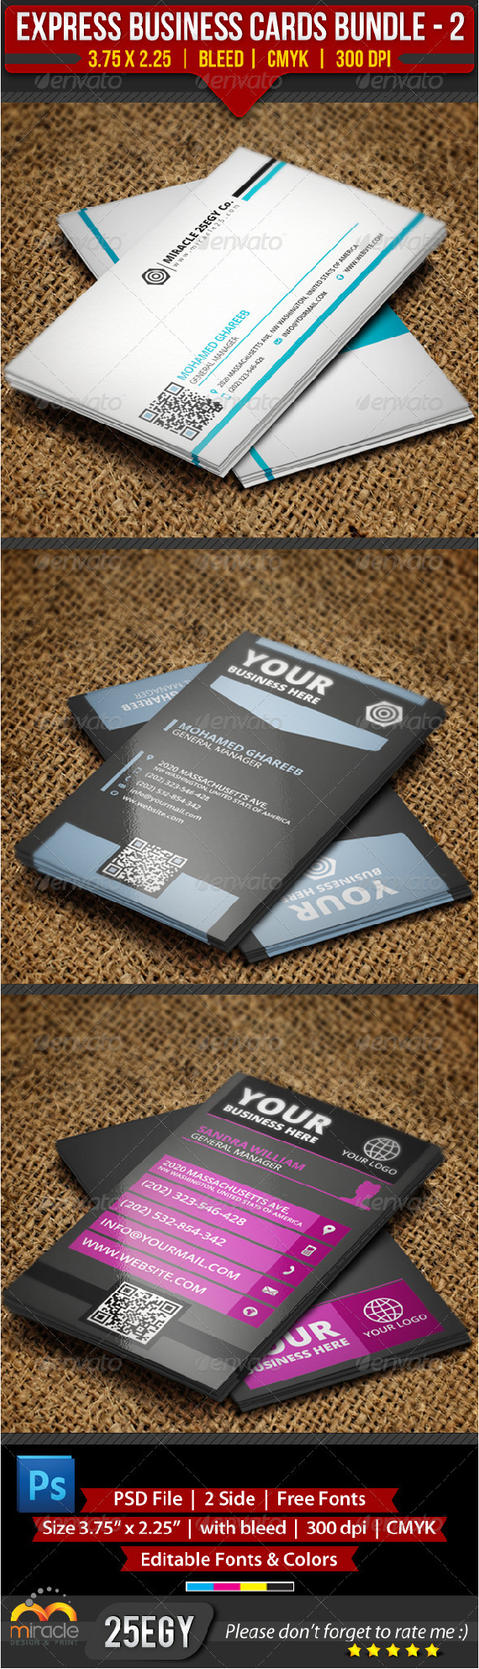 Express Business Cards Bundle 2 by EgYpToS on DeviantArt